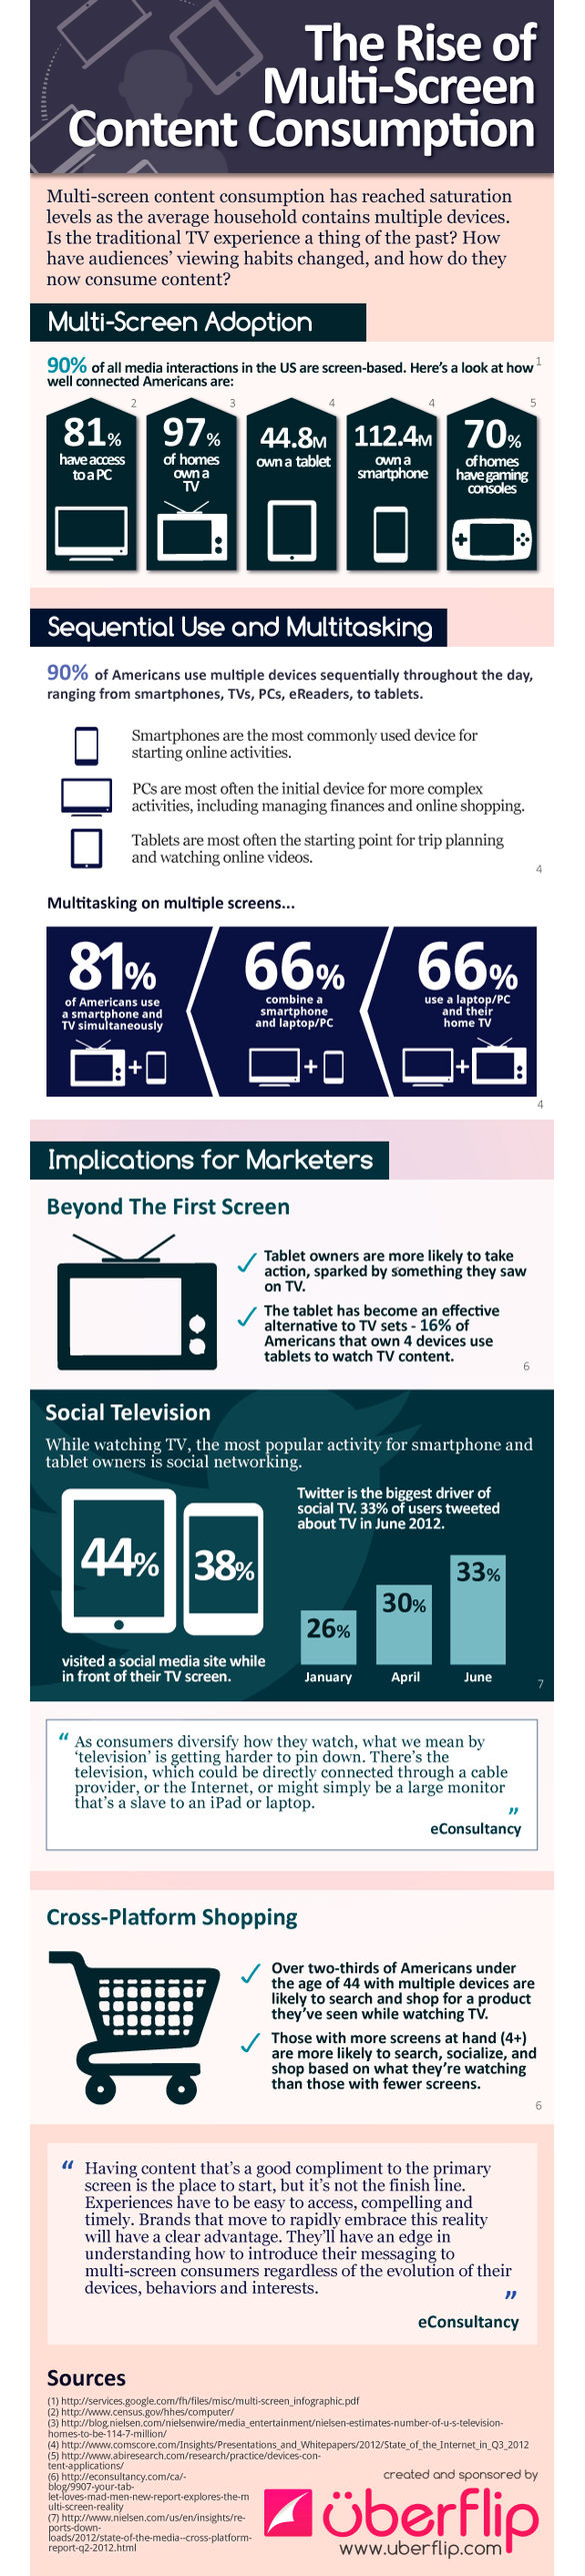 1682278-inline-inline-1-infographic-the-rise-of-multi-screen-content-consumption